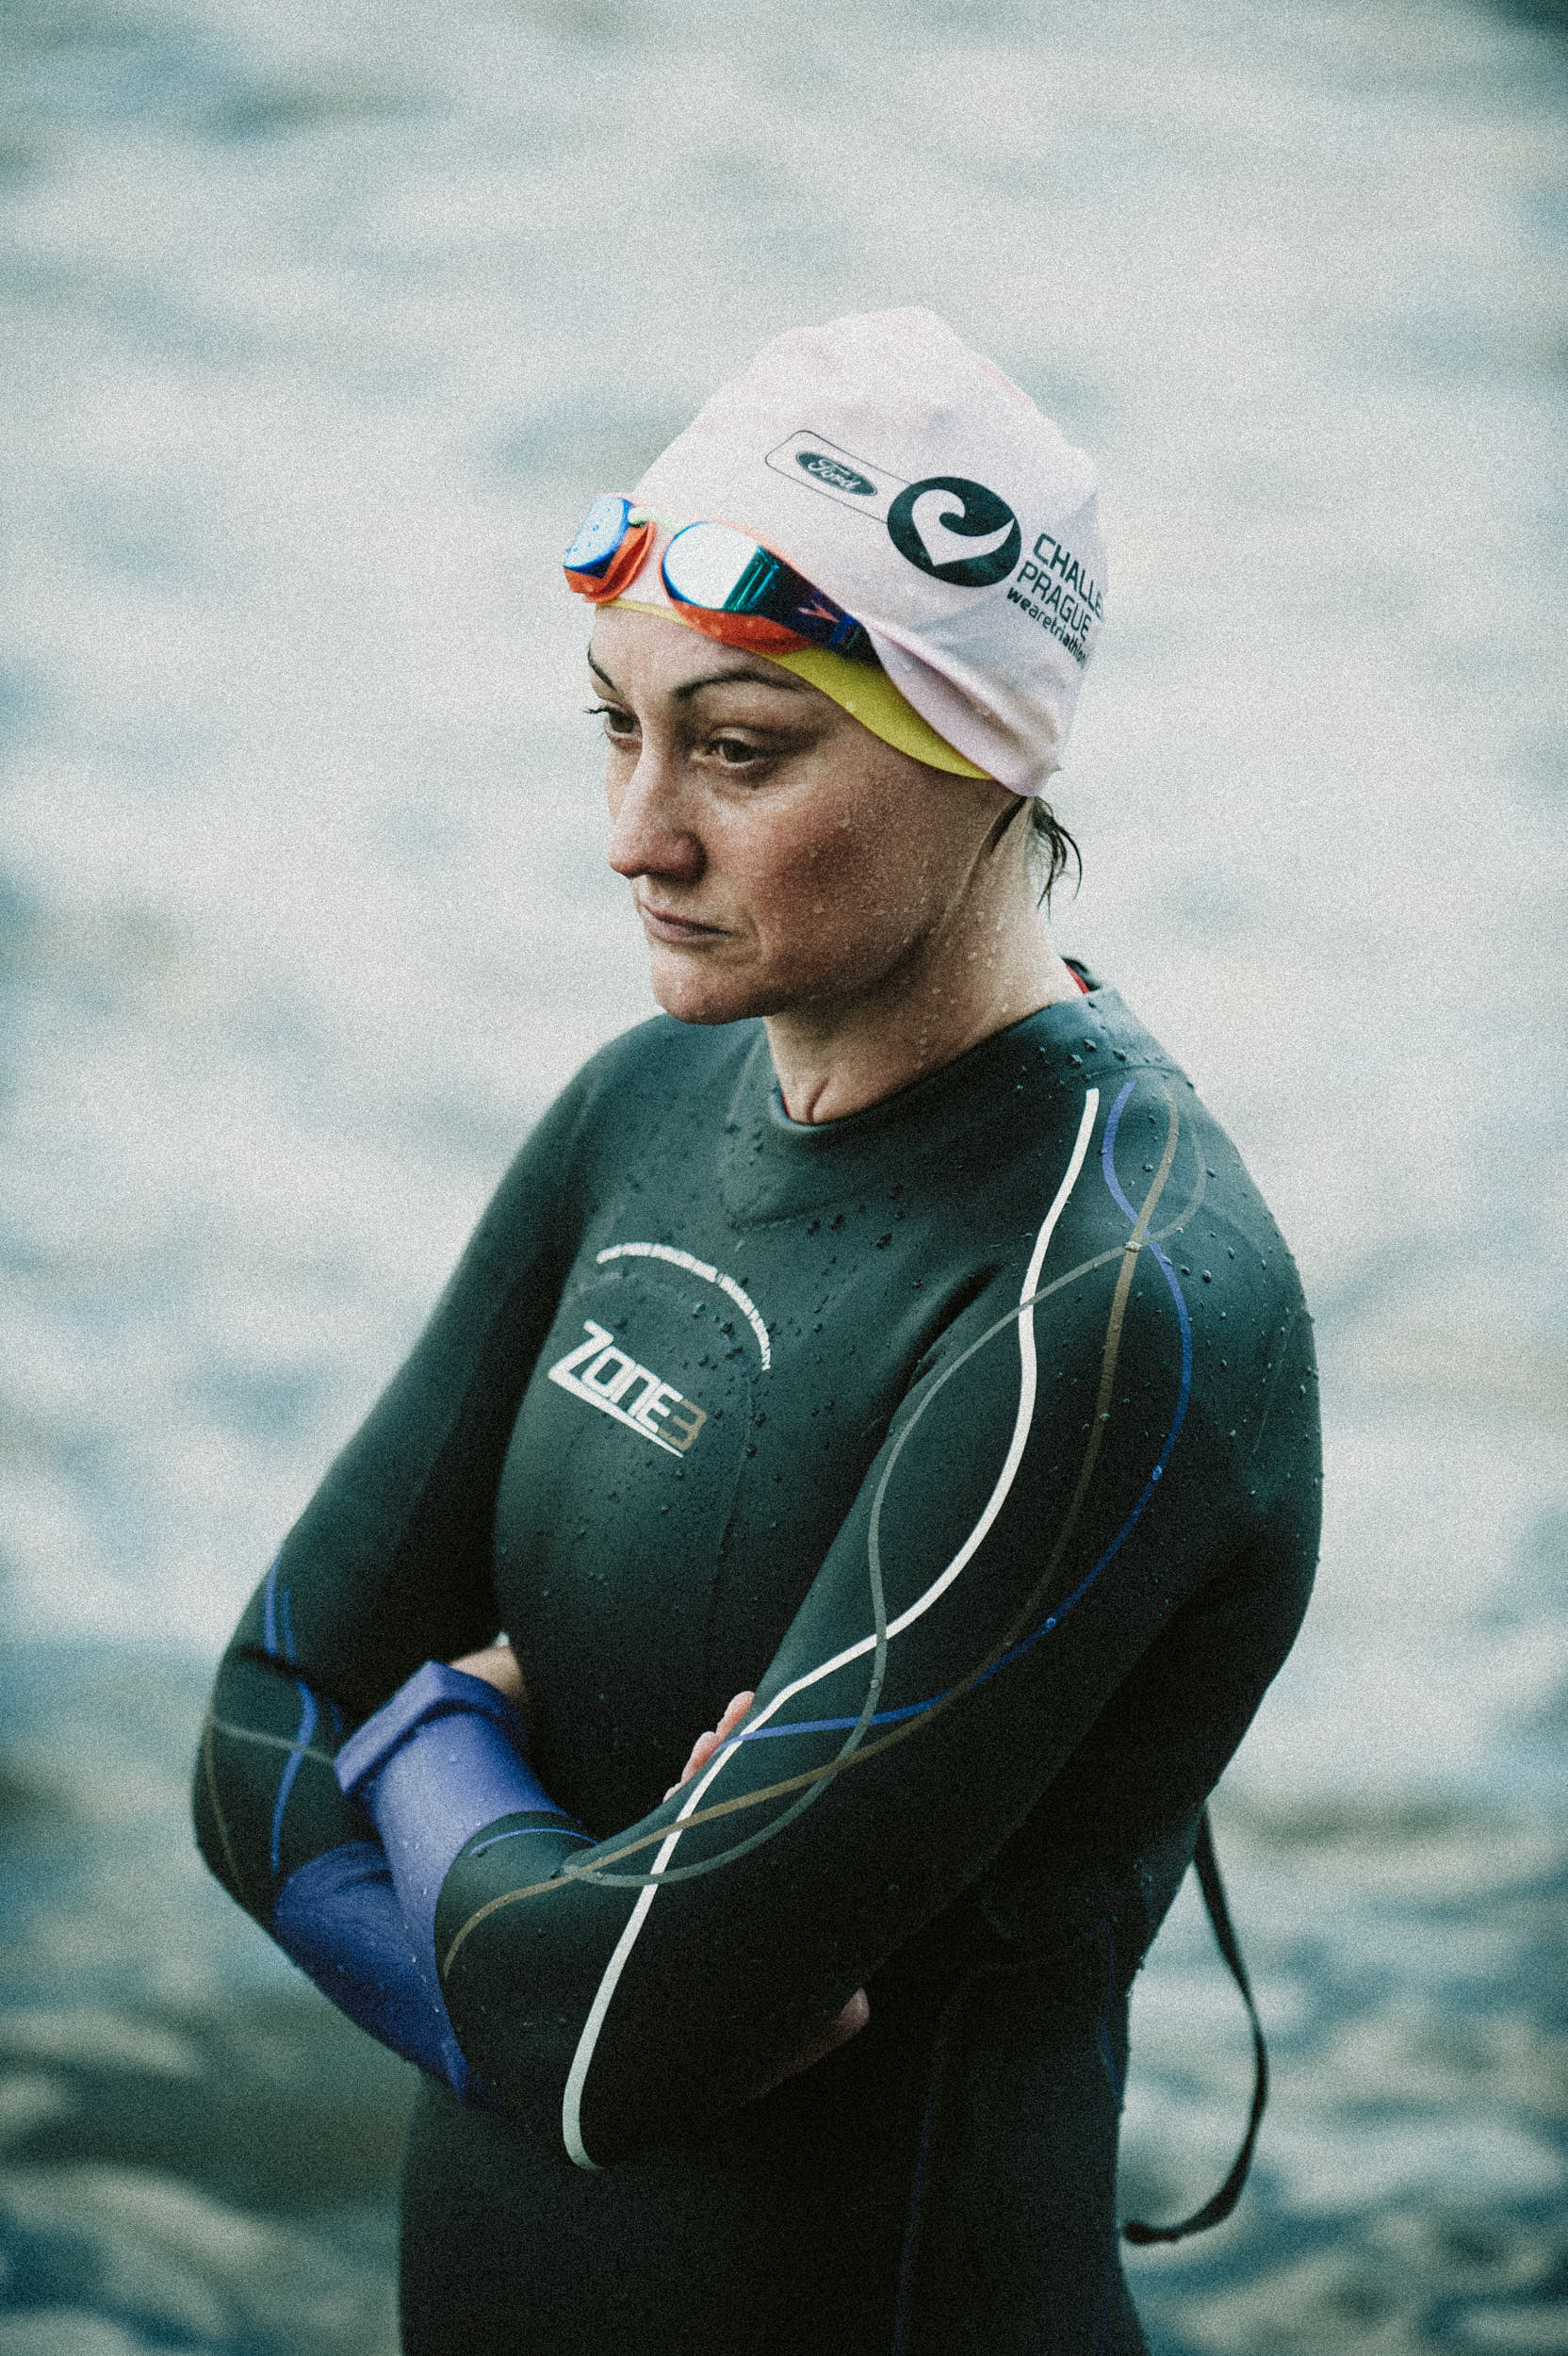 Moody portrait of a triathlete in wetsuit getting ready for the race.